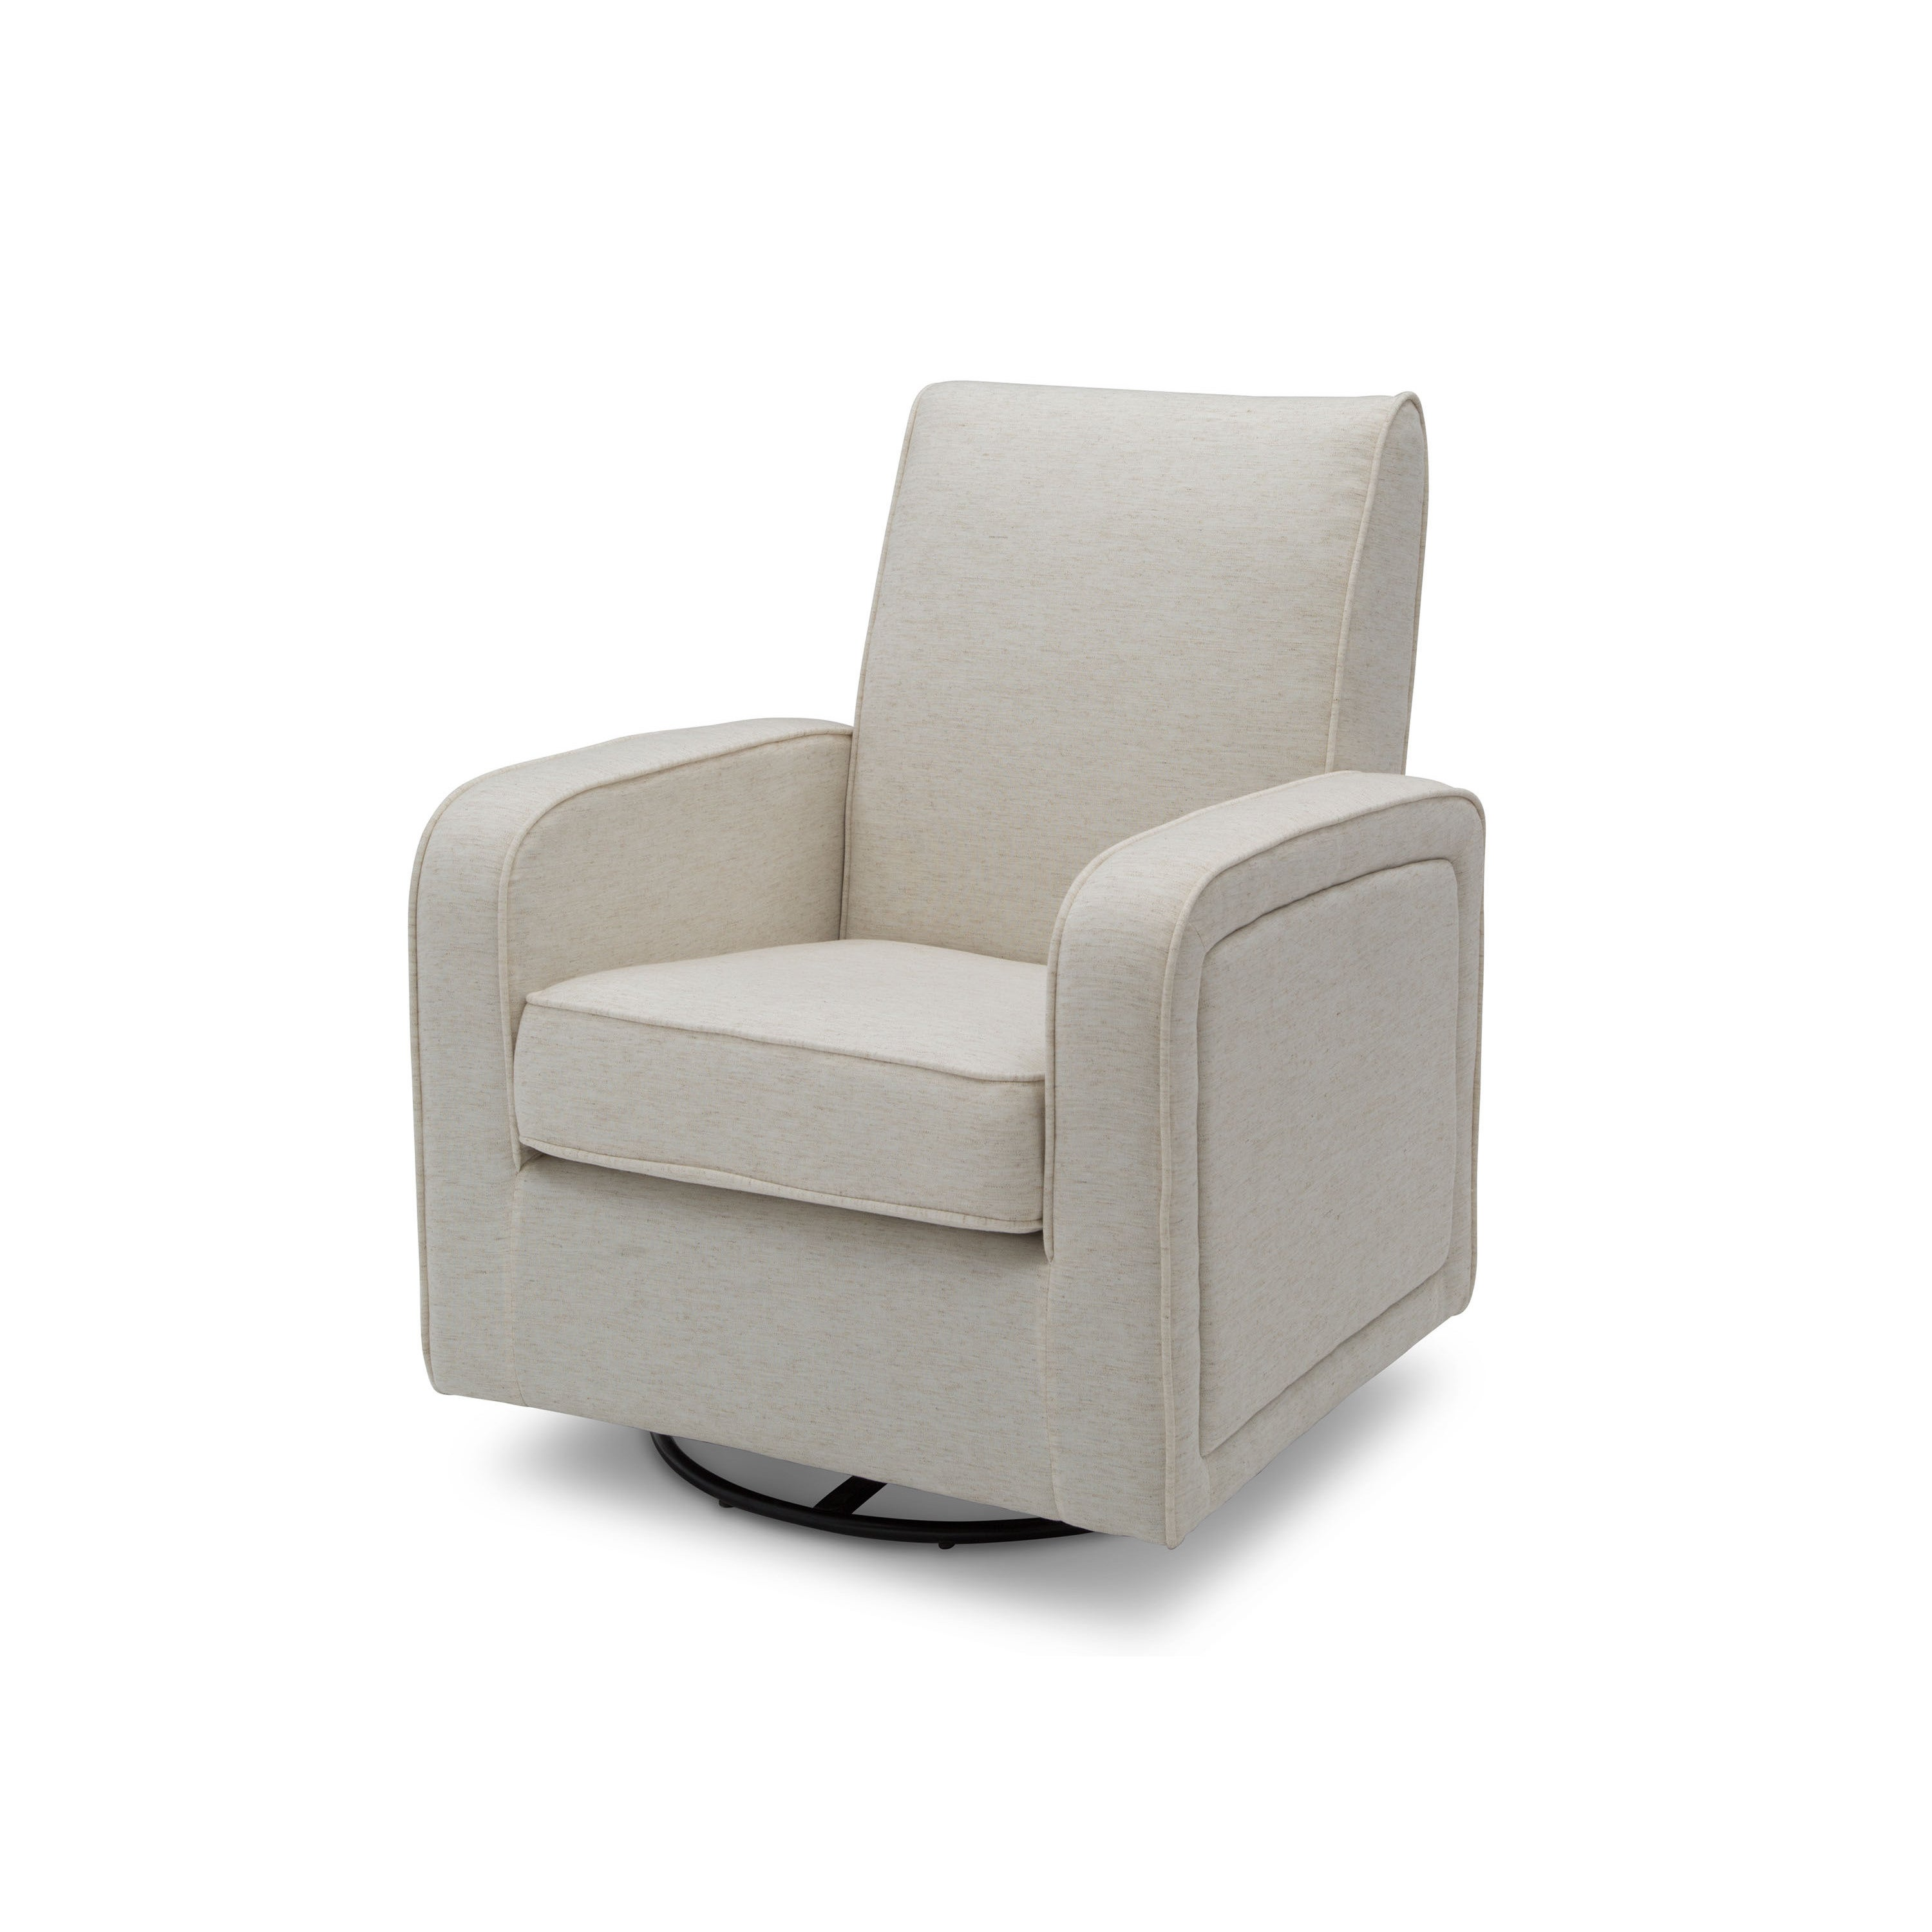 Delicieux Shop Delta Children Charlotte Nursery Glider Swivel Rocker Chair, Sand    Free Shipping Today   Overstock.com   15020076